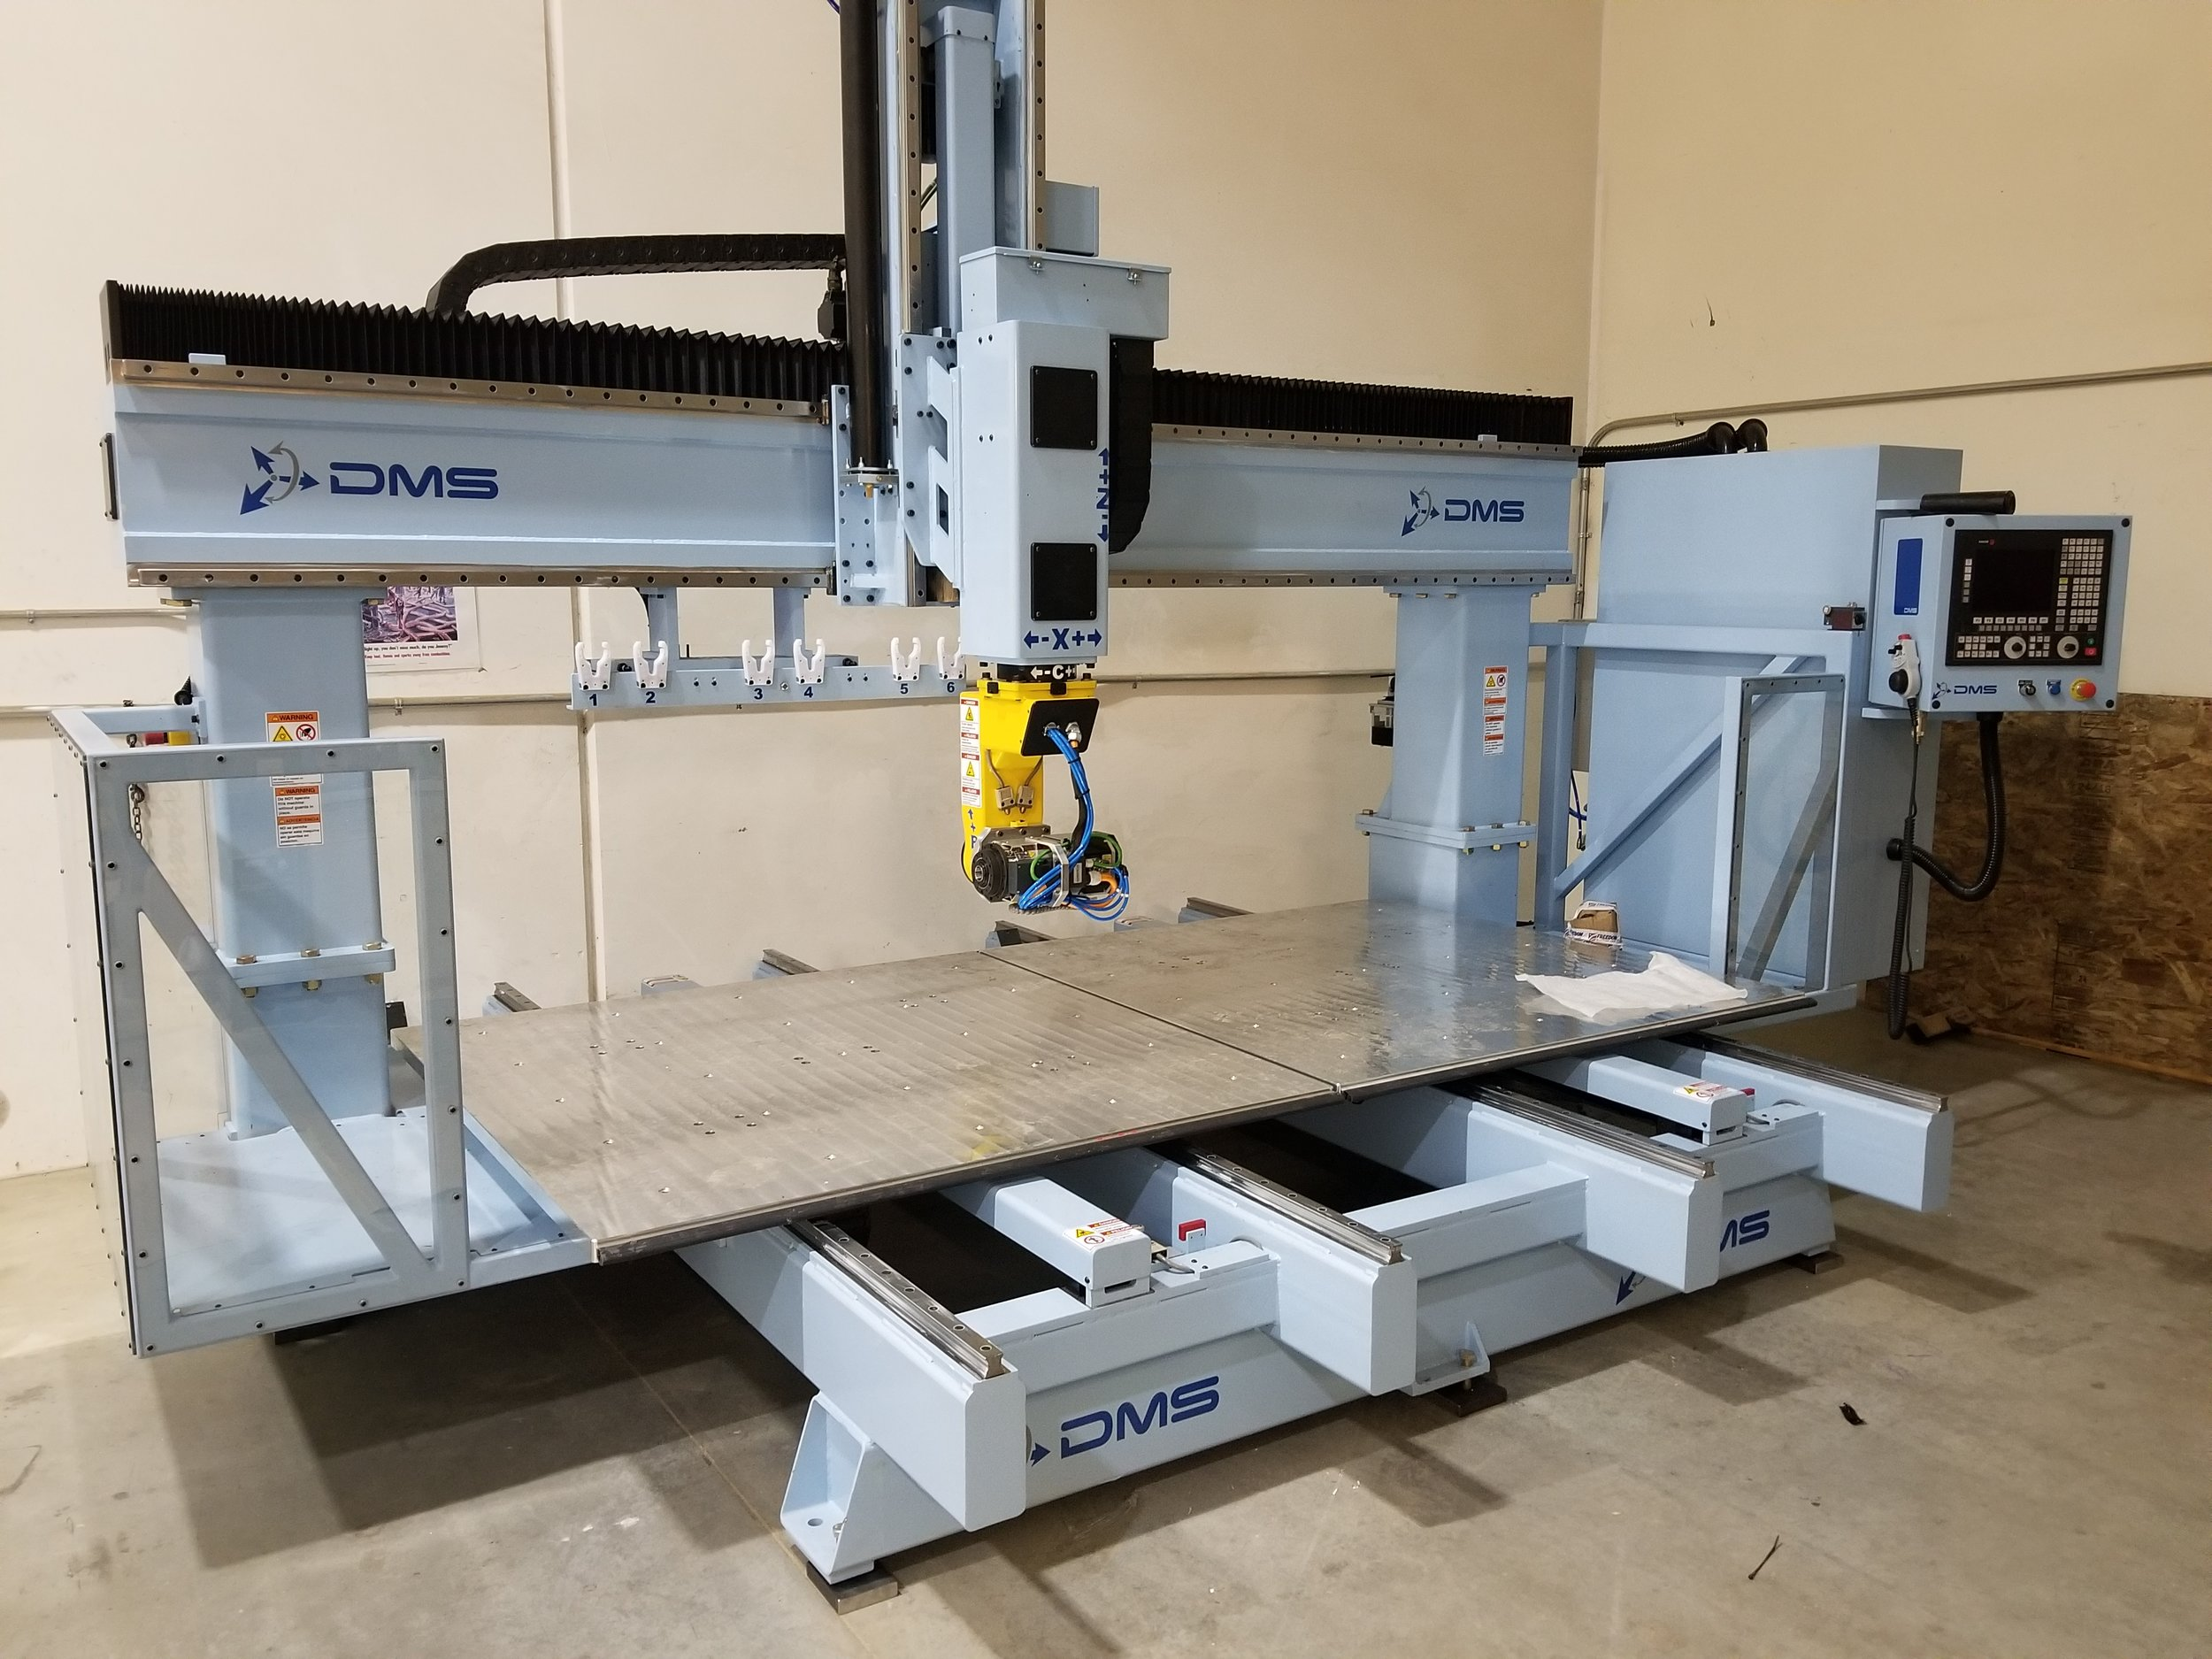 DMS 5-Axis CNC Router - -6ftx3ftx10ft working area-Continuous 5 axis machining-High speed rapid-milling-Tight tolerance (.001) in accuracy